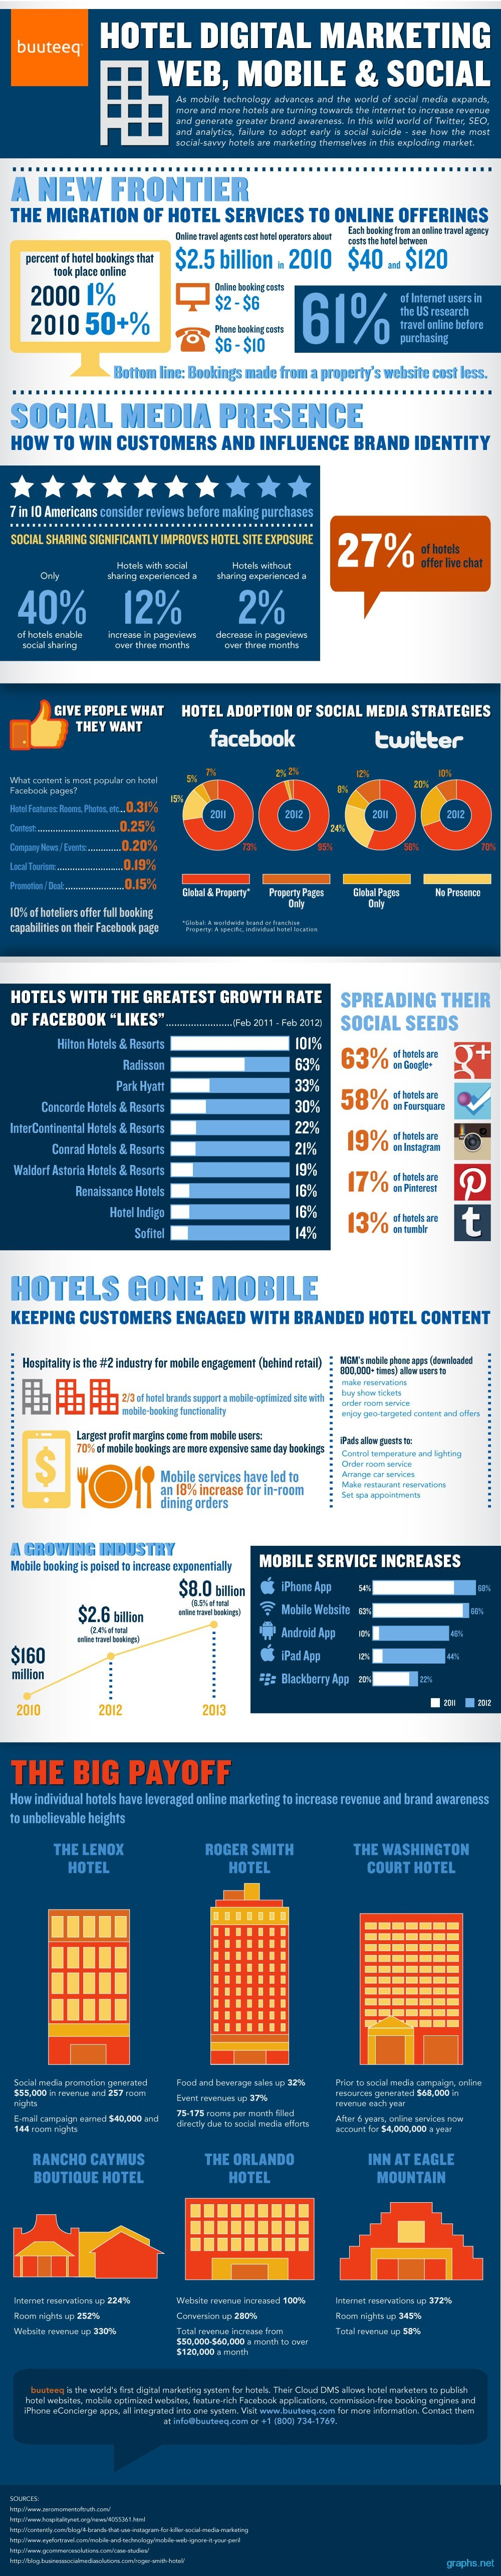 Online Hotel Marketing Strategies